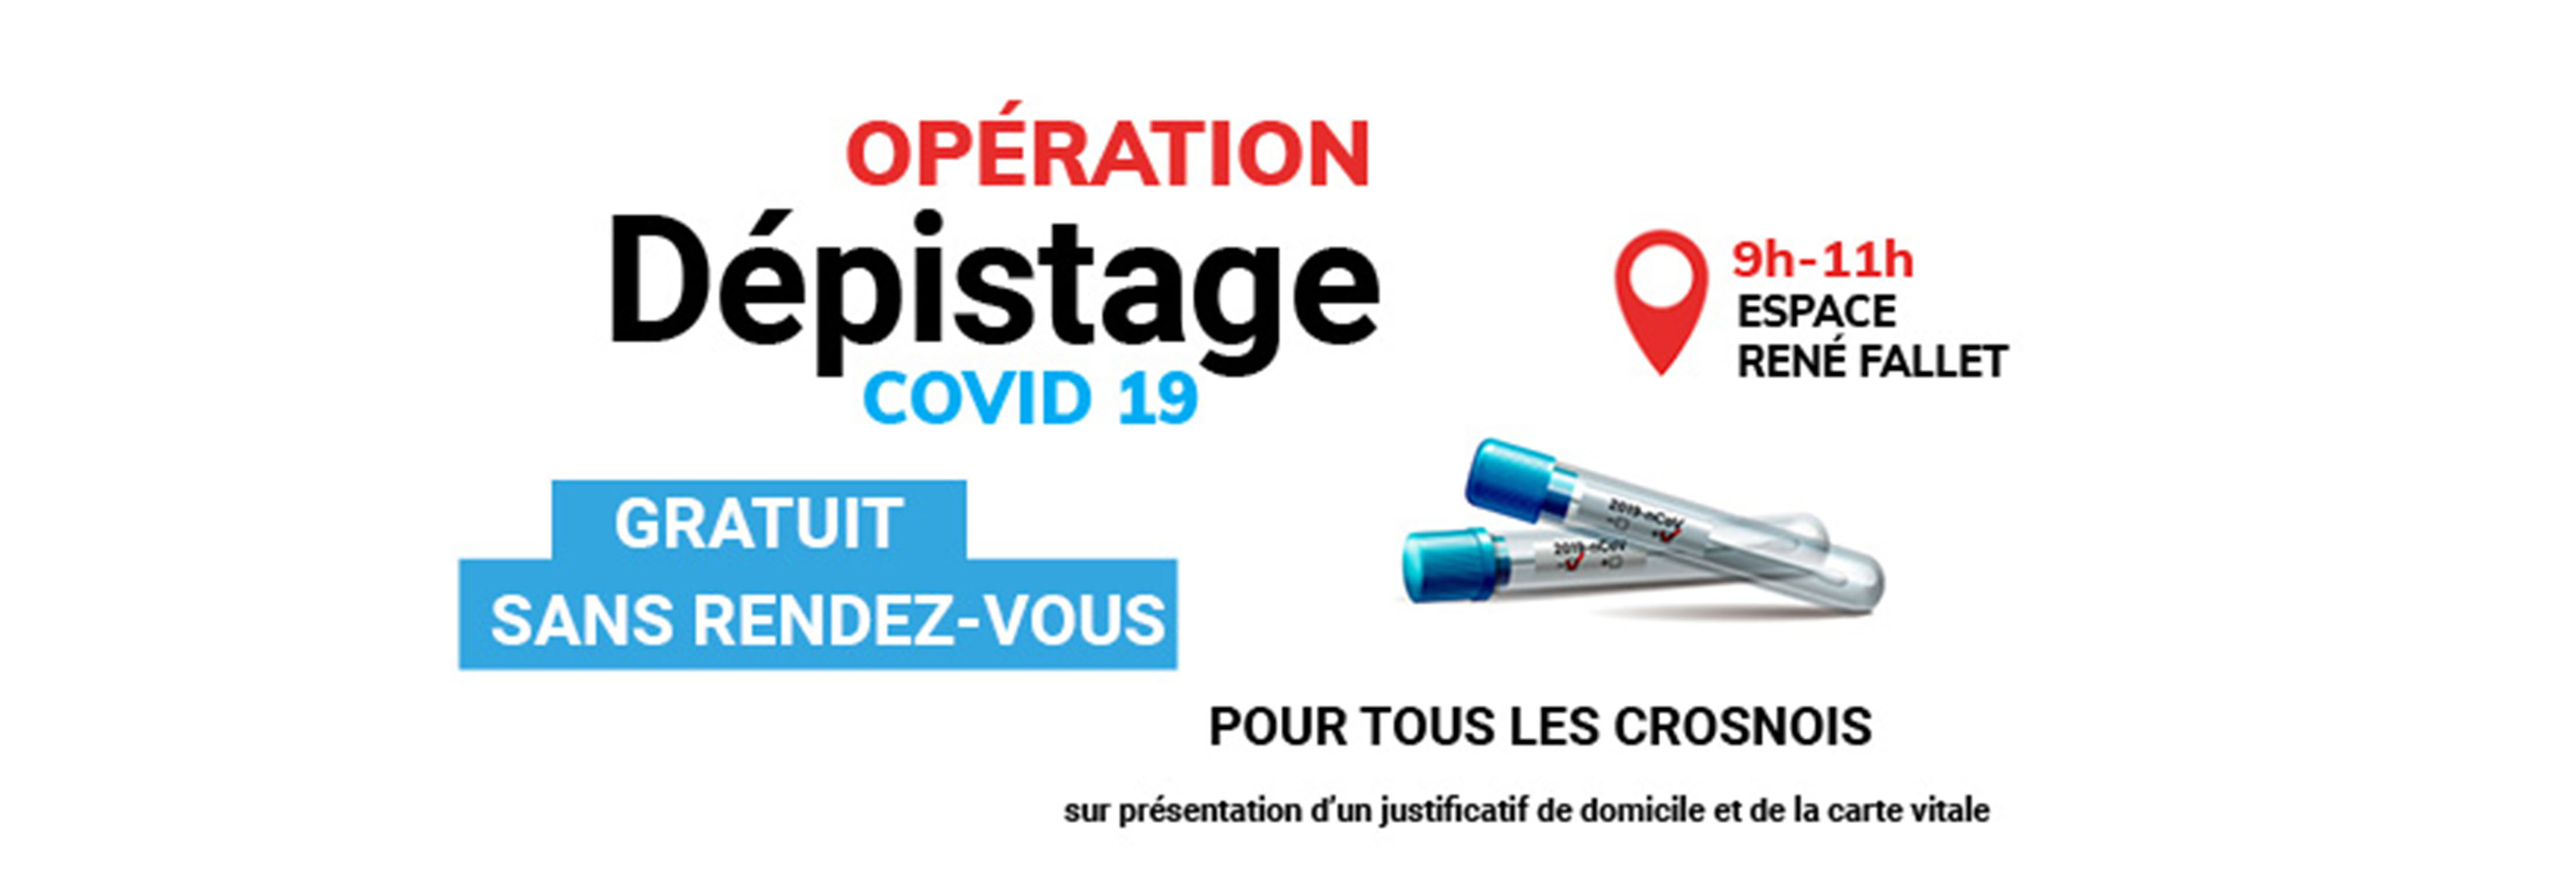 Operation depistage COVID